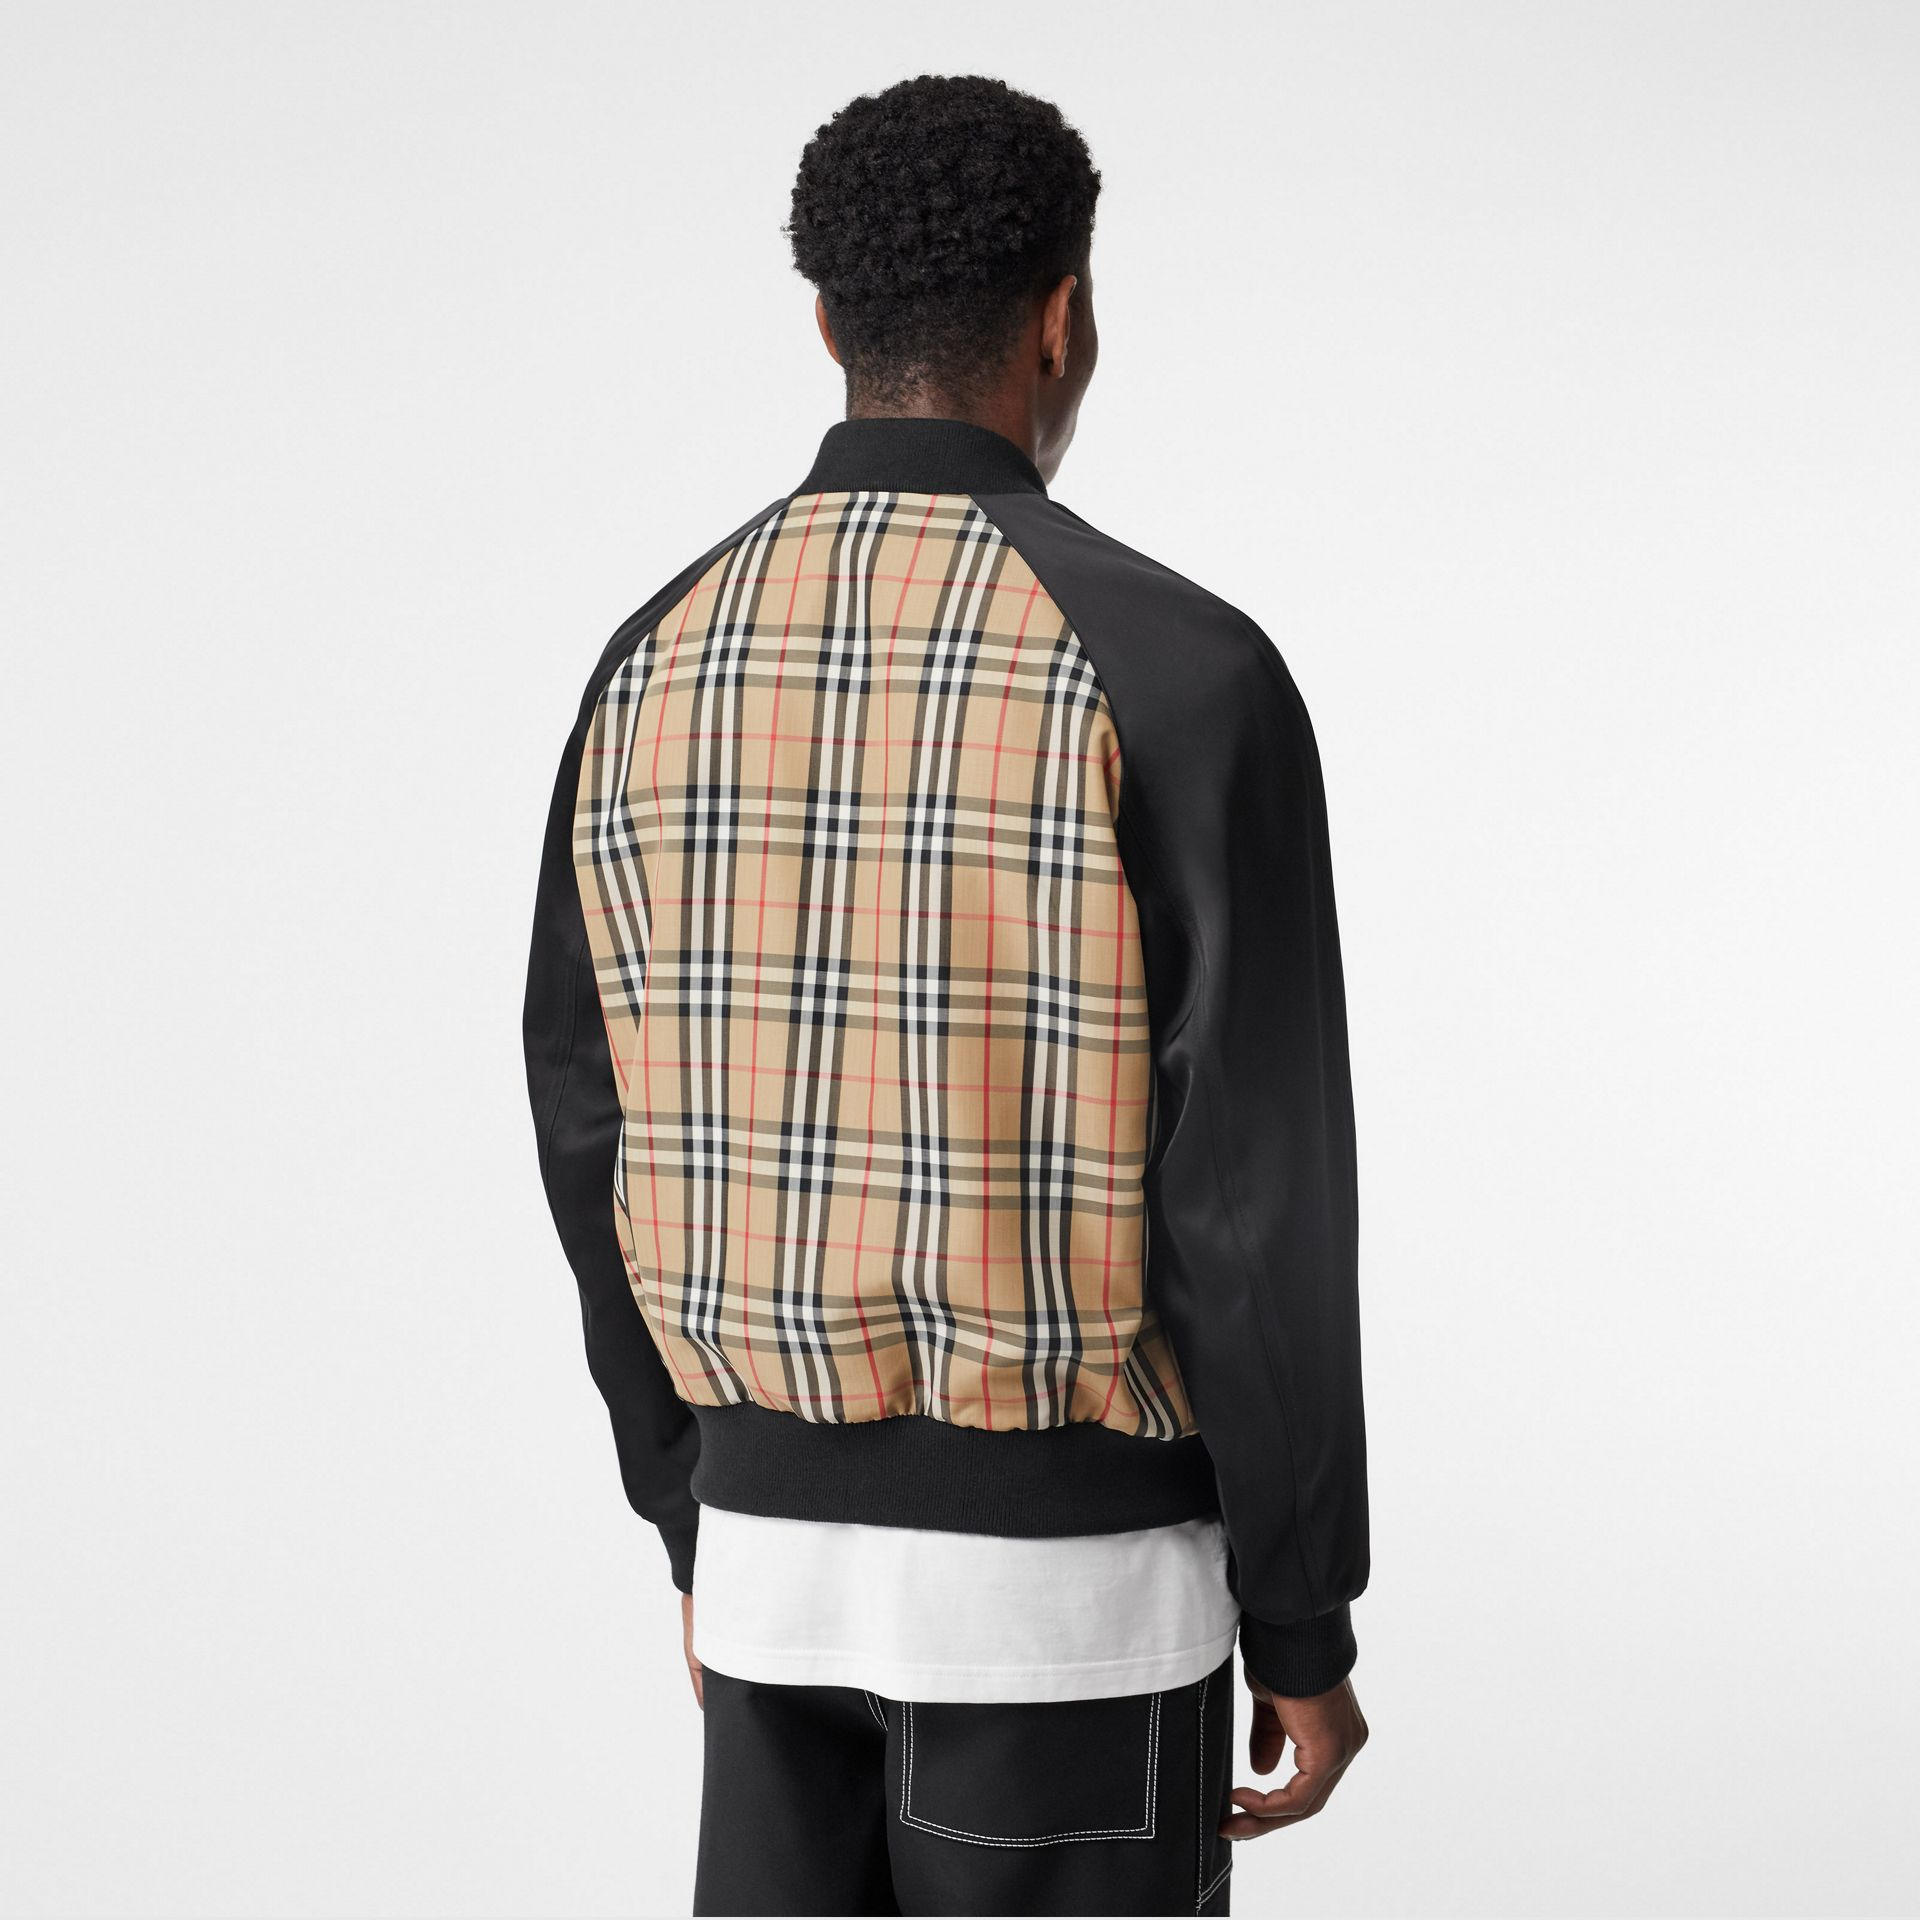 Monogram Motif Vintage Check Nylon Bomber Jacket in Archive Beige - Men | Burberry United States - gallery image 1